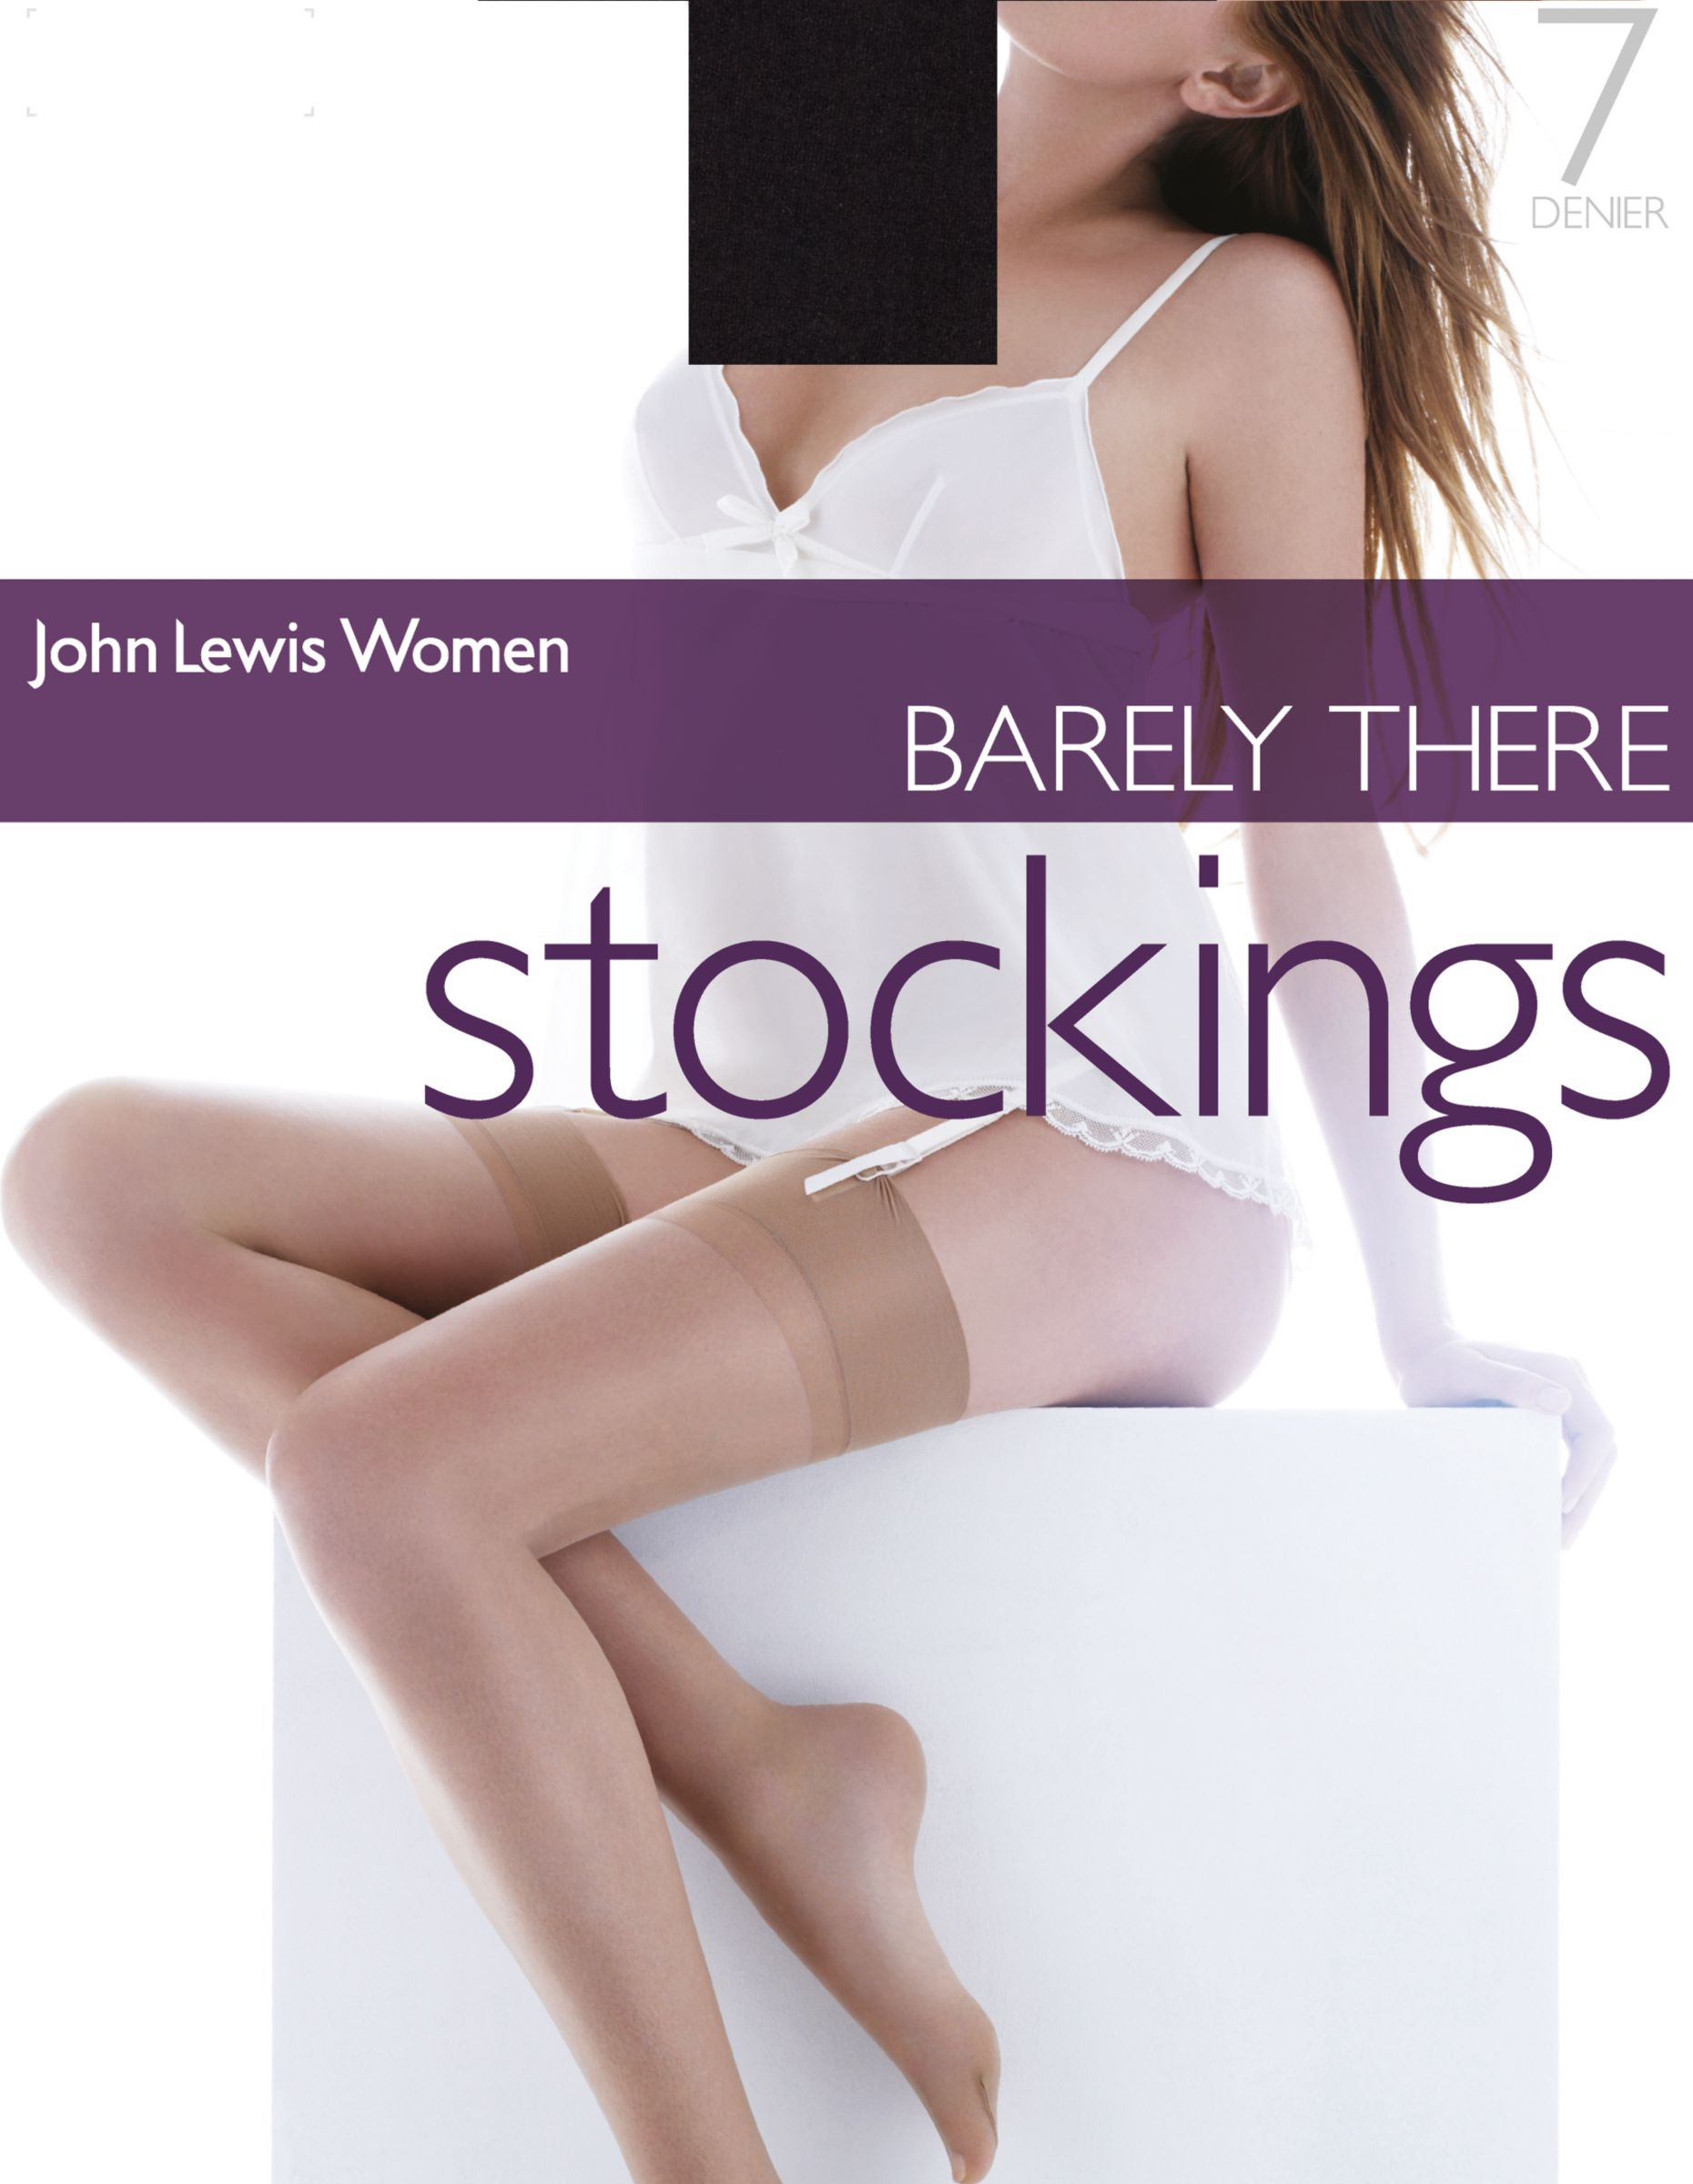 John Lewis Barely There Stockings